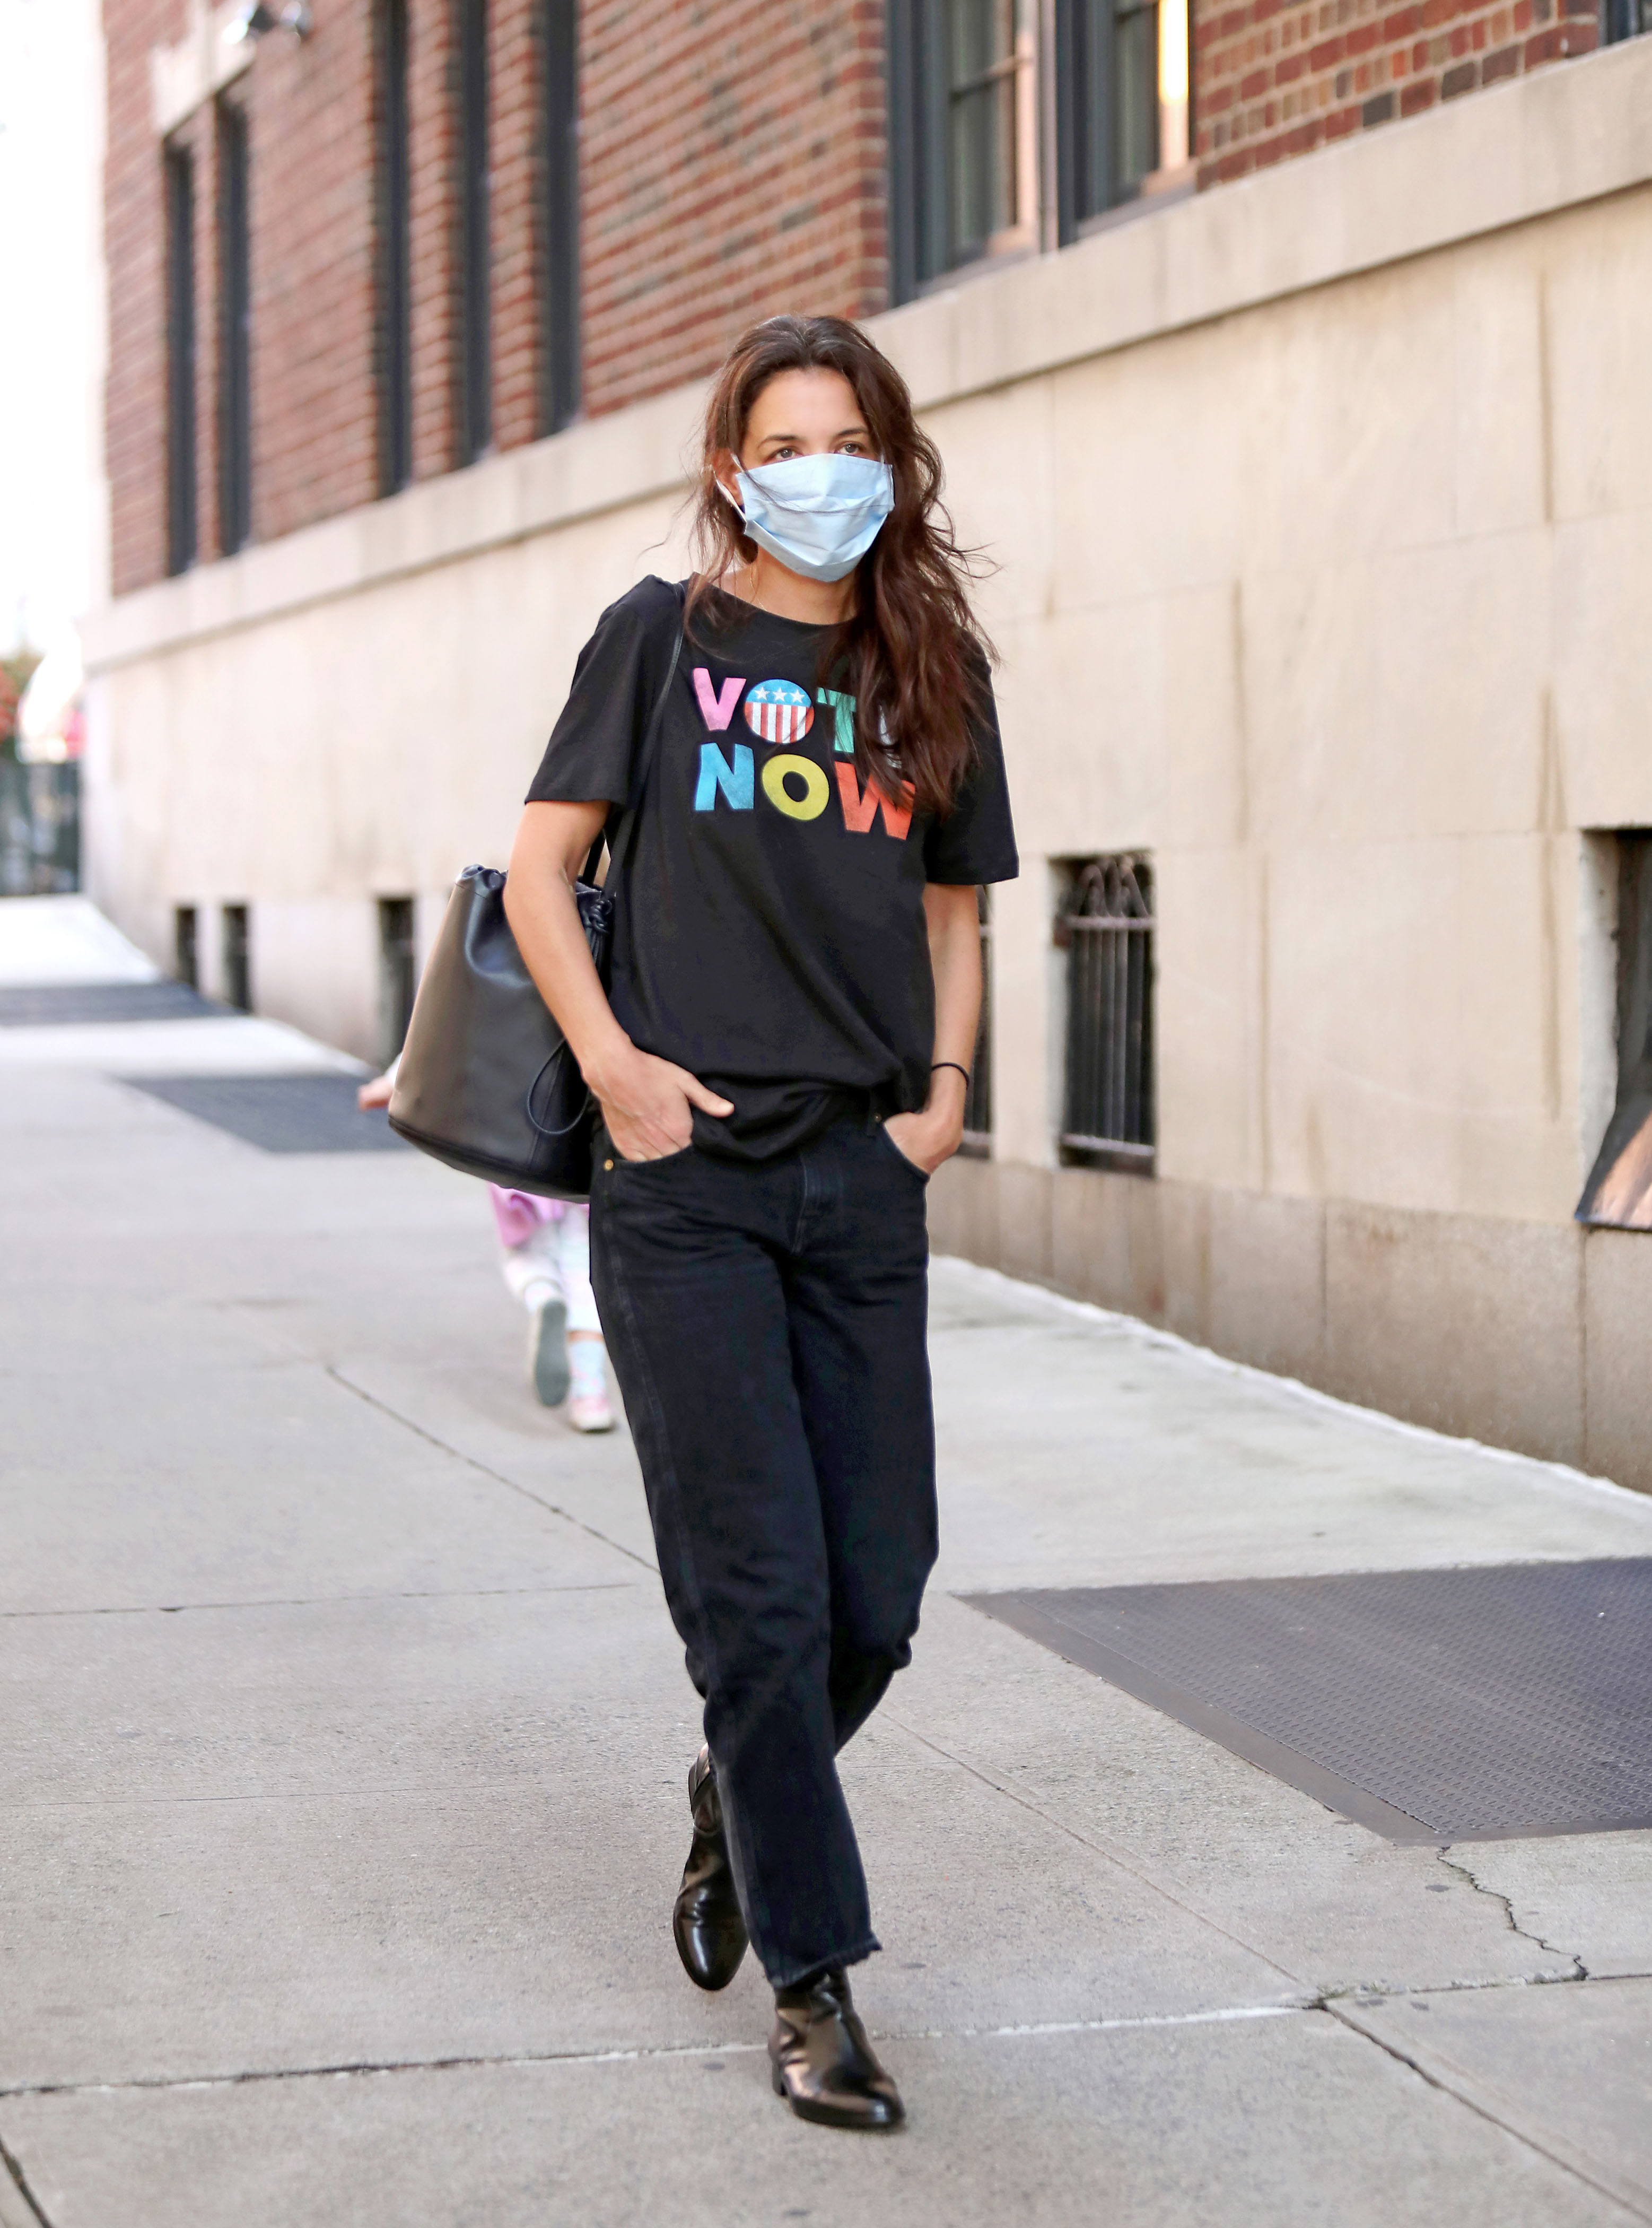 Katie Holmes rocks an Old Navy VOTE tee shirt following the brand's commitment to pay their their employees to Power the Polls, an initiative to ignite voting. - Pictured: Katie Holmes - Photo: SJZ/Shutterstock